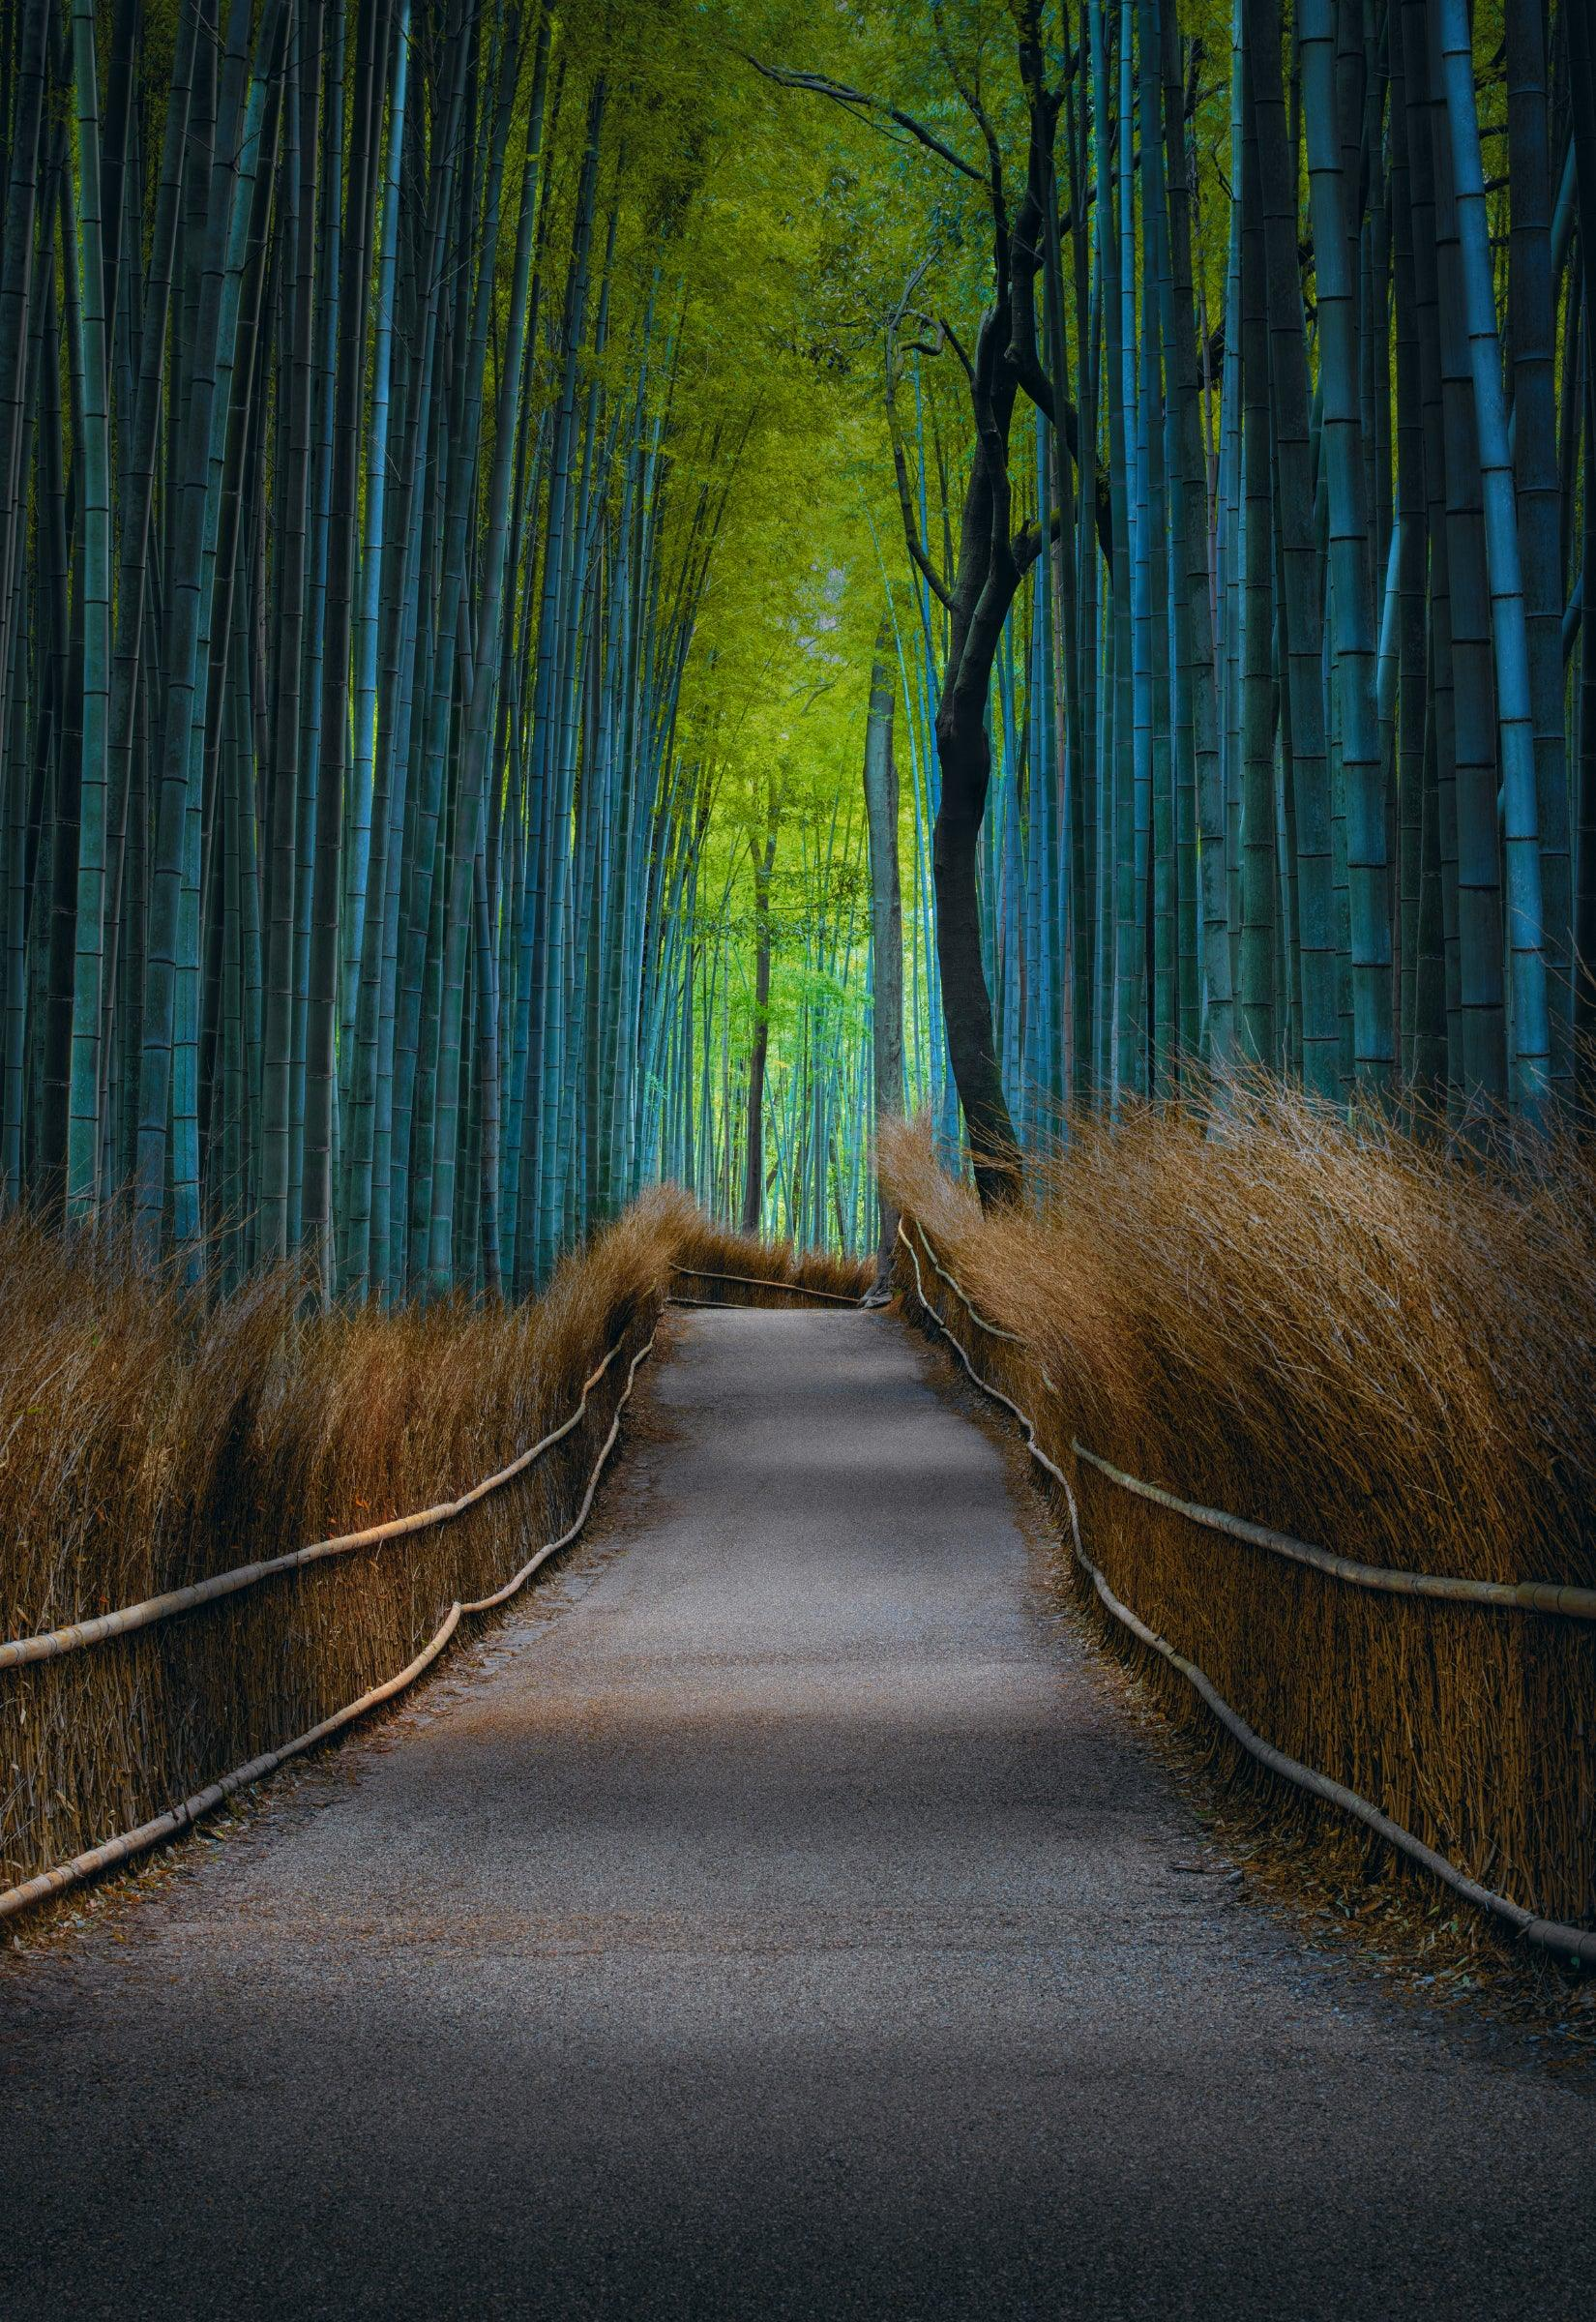 Concrete path with brown grass barriers leading down the middle of a green bamboo forest in Kyoto Japan